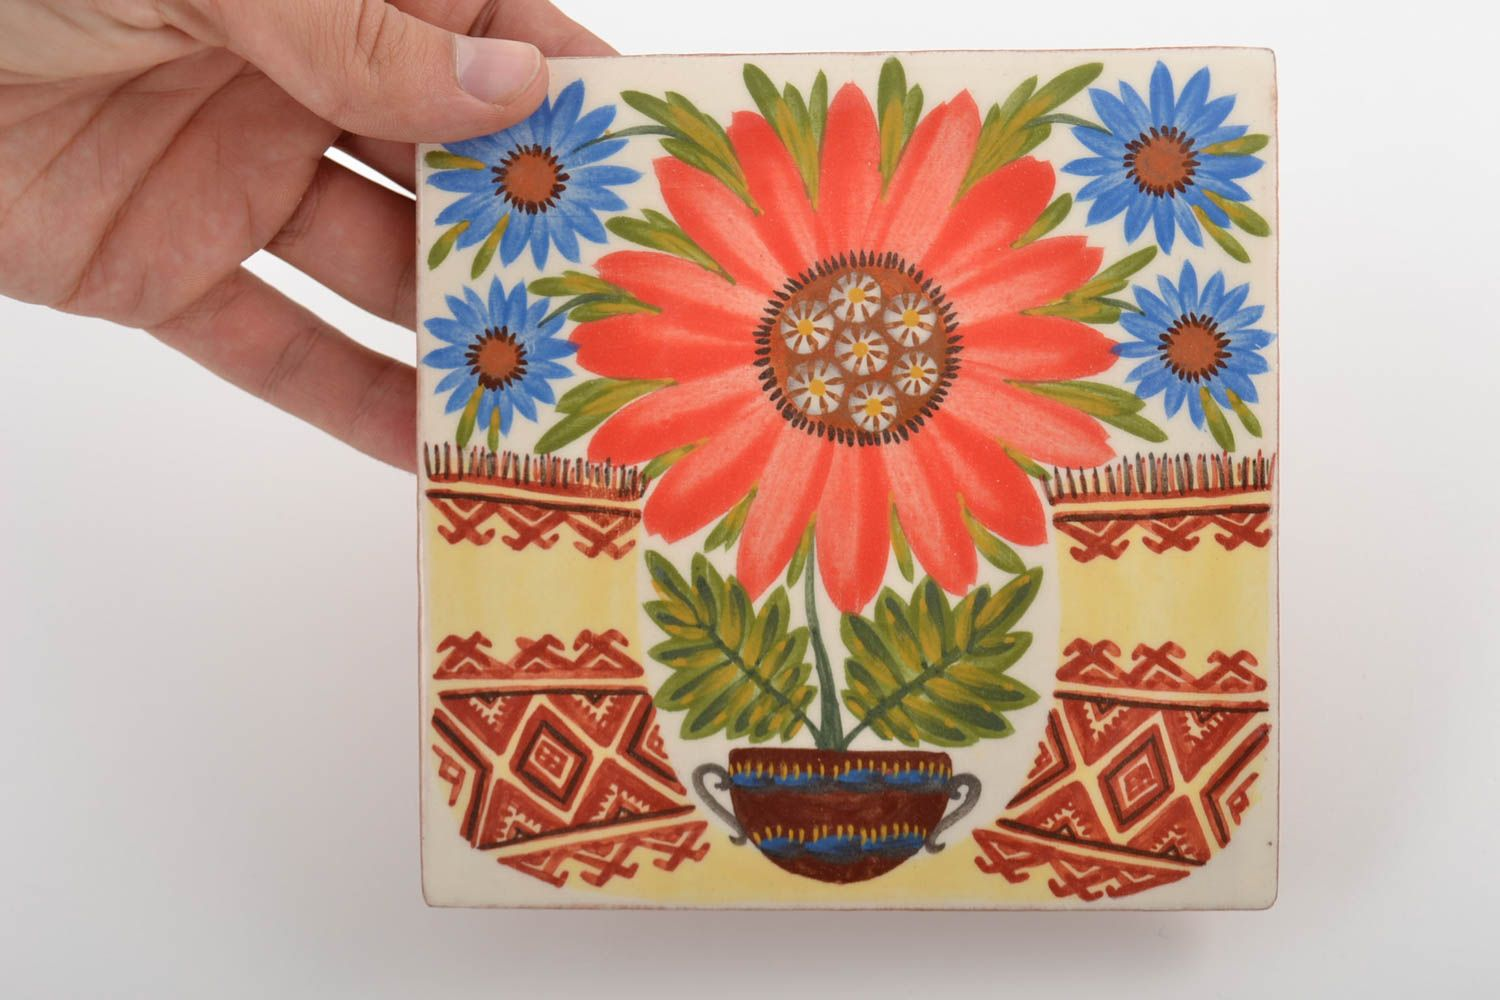 Square handmade wall tile with flowers made of clay colorful interior wall panel photo 2